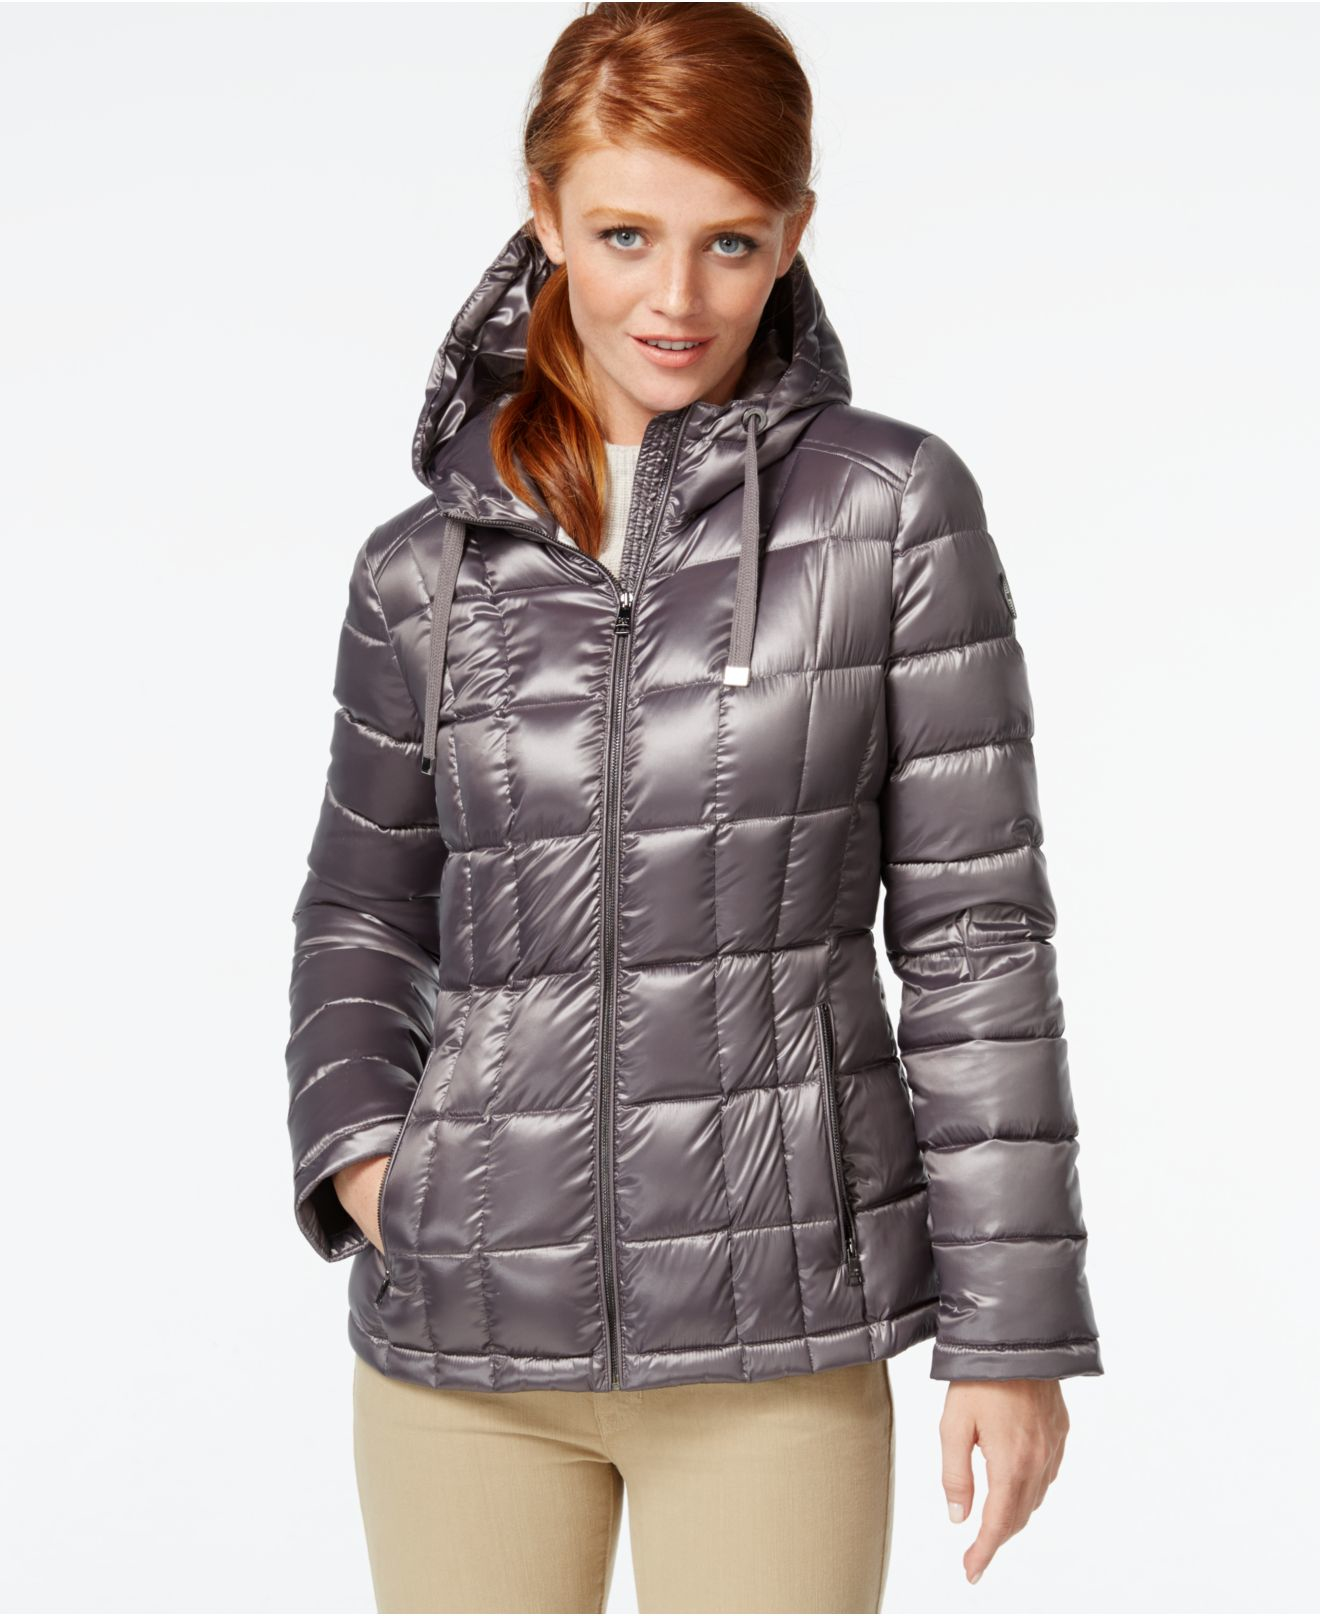 Calvin Klein Petite Packable Hooded Puffer Jacket In Gray